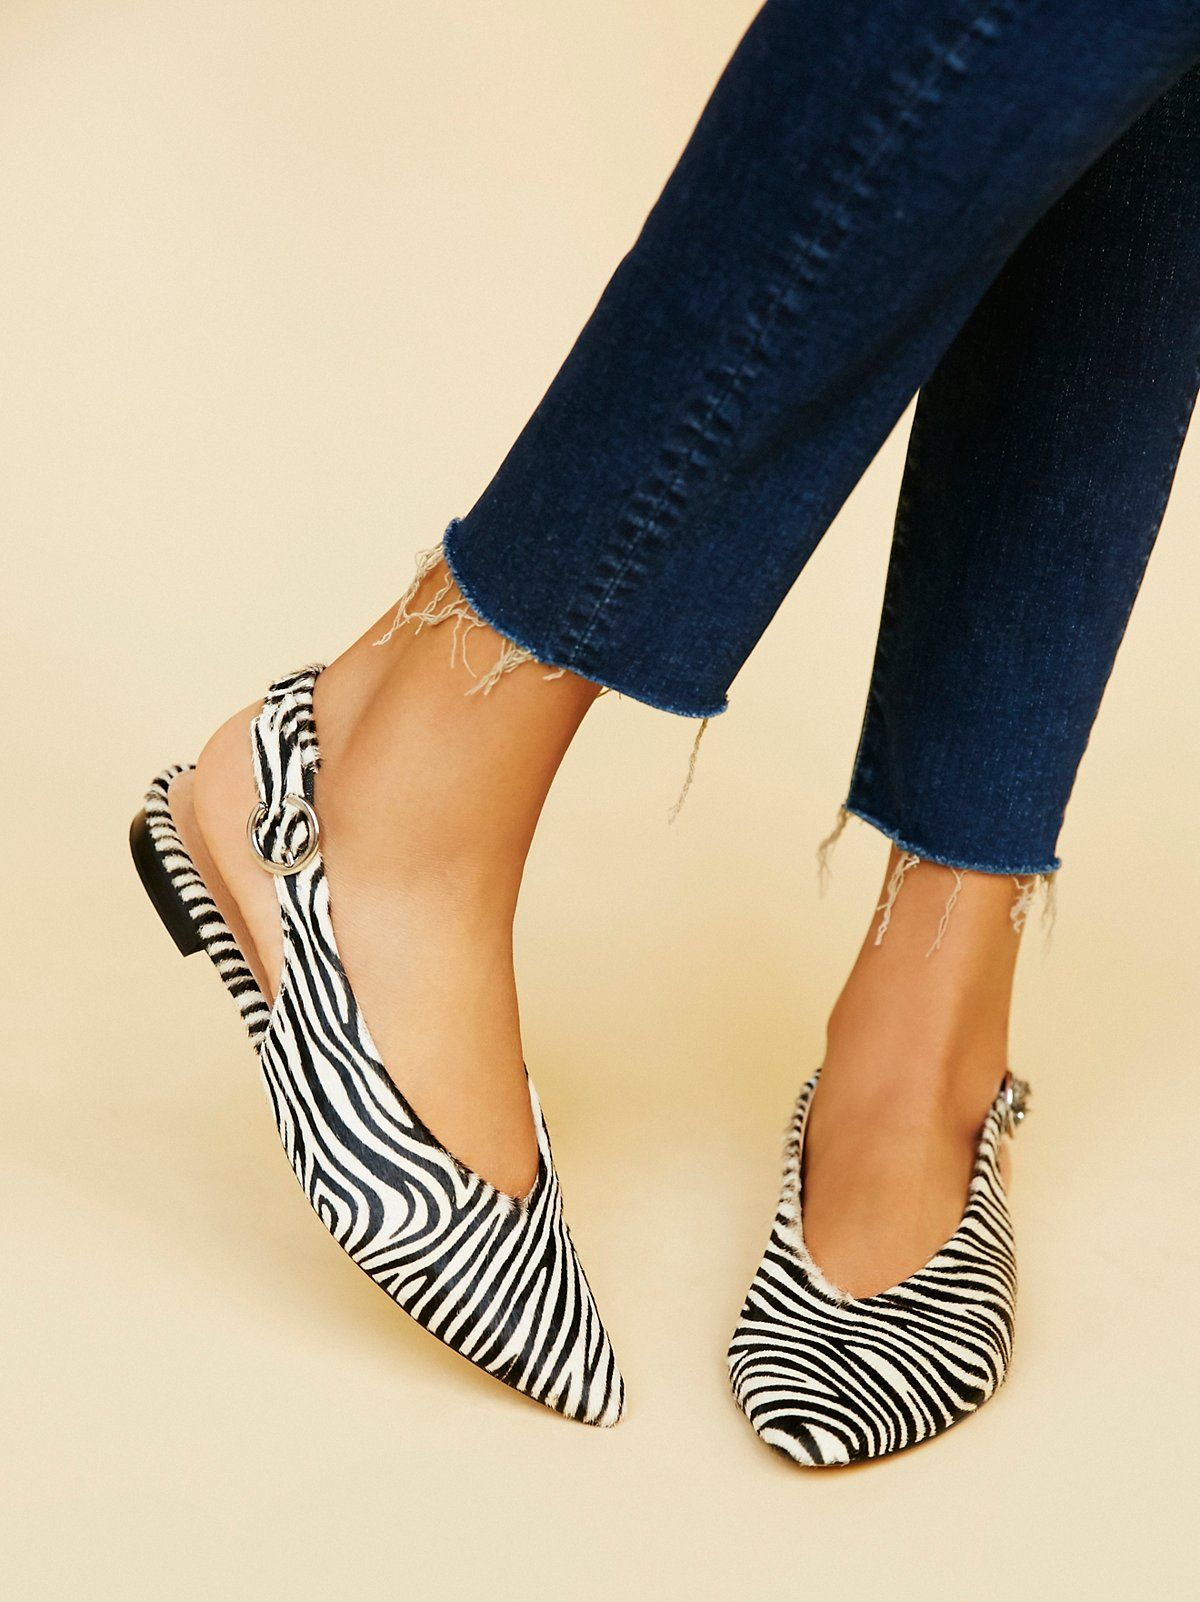 40f9789ebc3b Zebra printed calf-hair pointed toe flats with an adjustable buckle in back  and elastic band for easy wear. Padded footbed for a more comfortable fit.